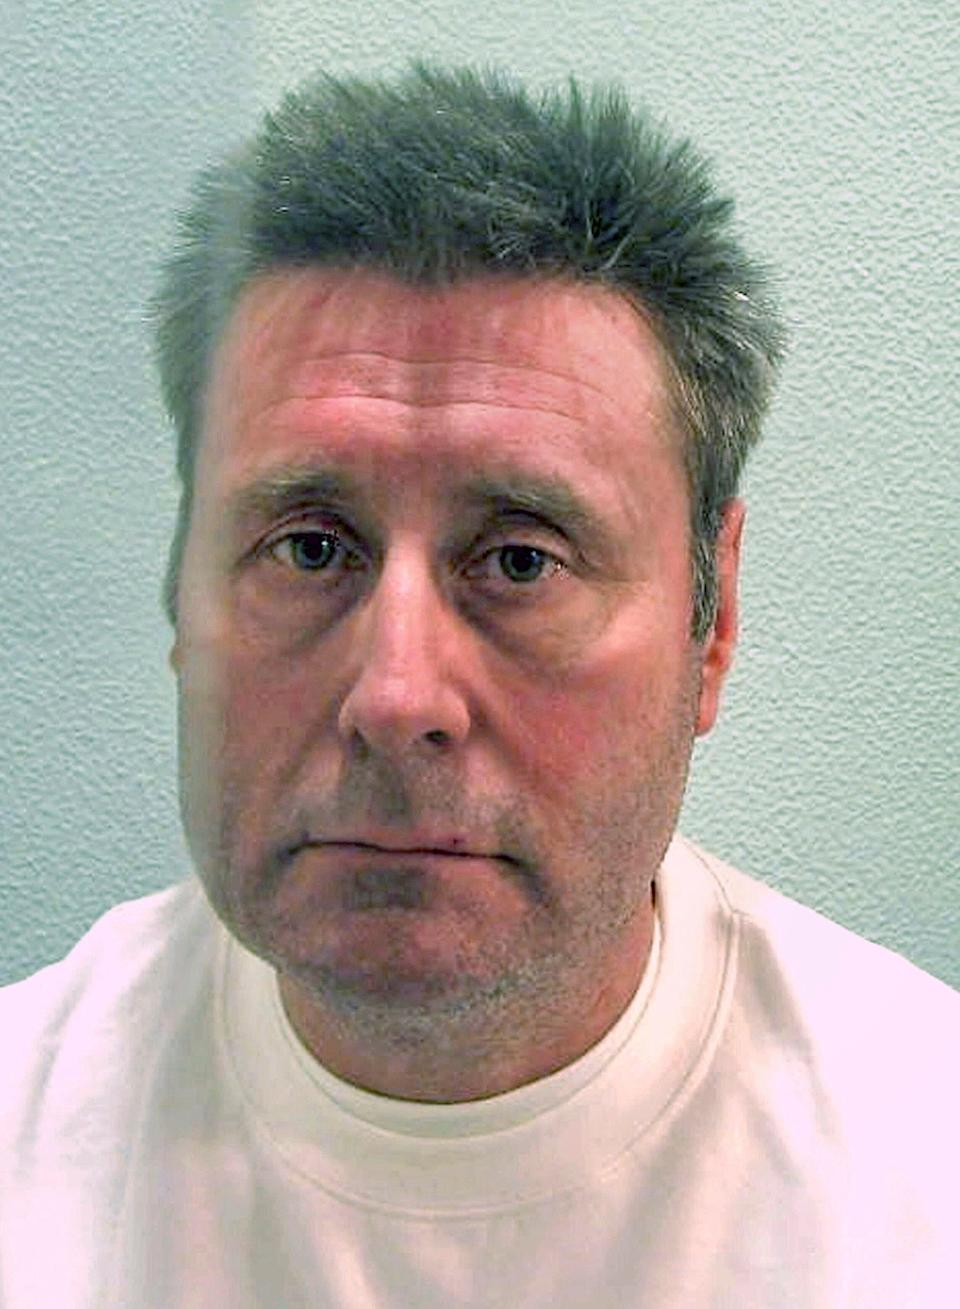 John Worboys admitted four similar attacks on women dating back to 2000 (Photo: ASSOCIATED PRESS)